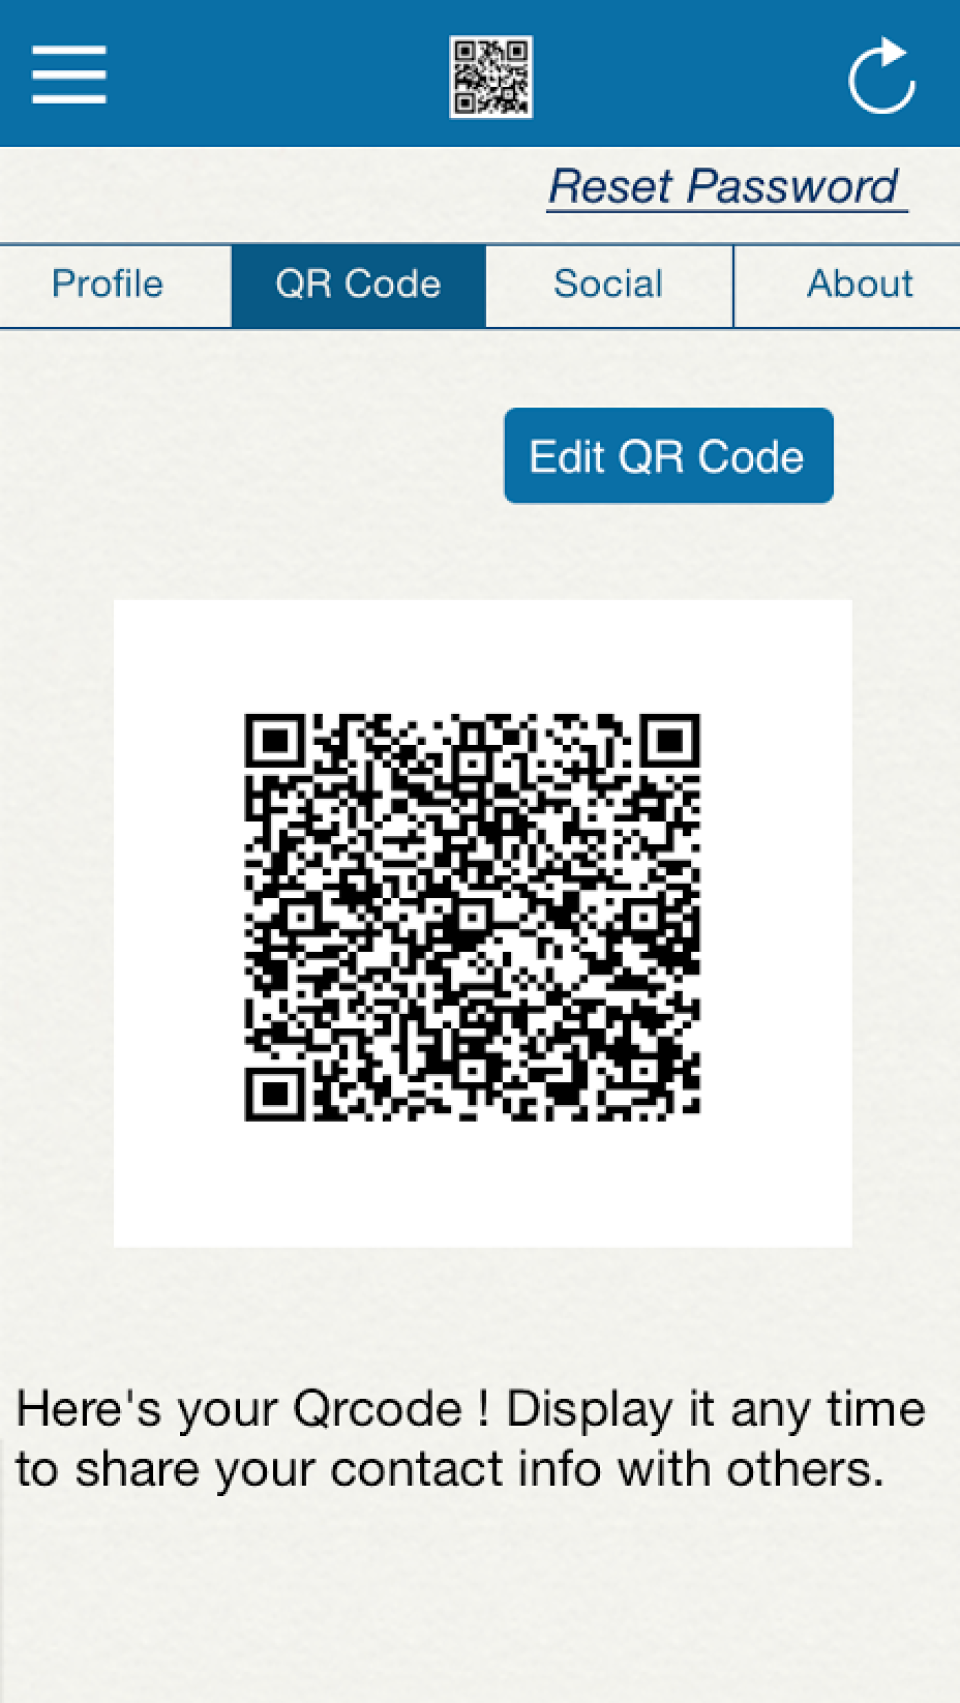 Access QR codes at the touch of a button